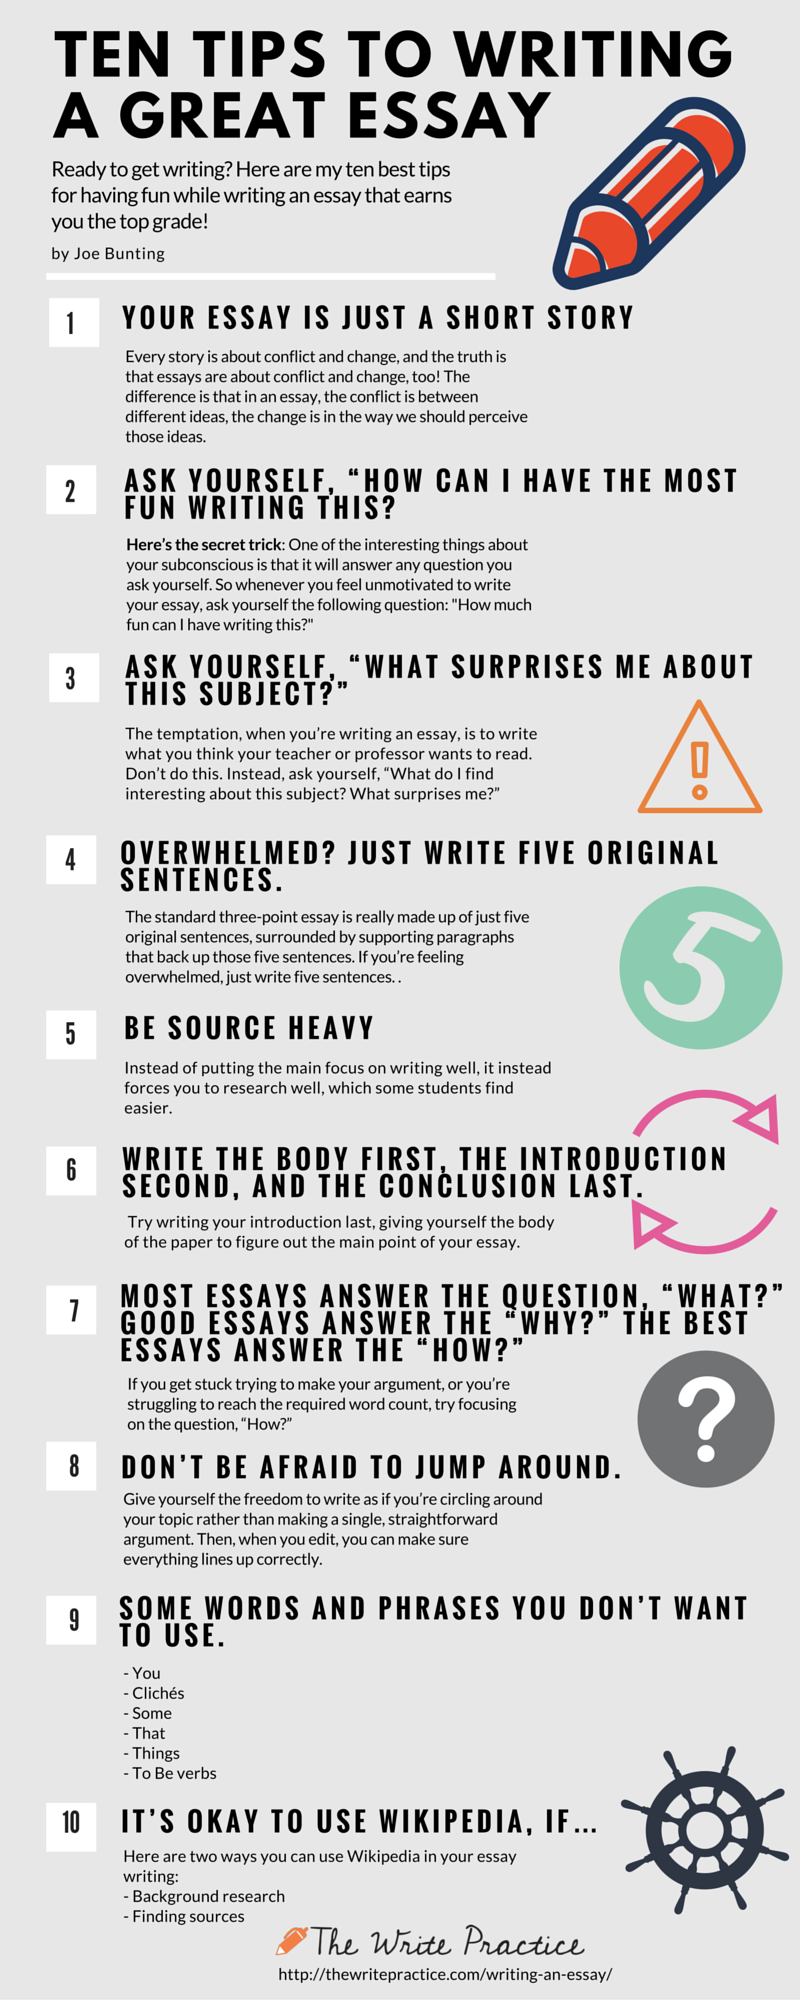 001 Write An Essay Example Tips For Writing Unbelievable How To Fast In Exam 6 Hours Full